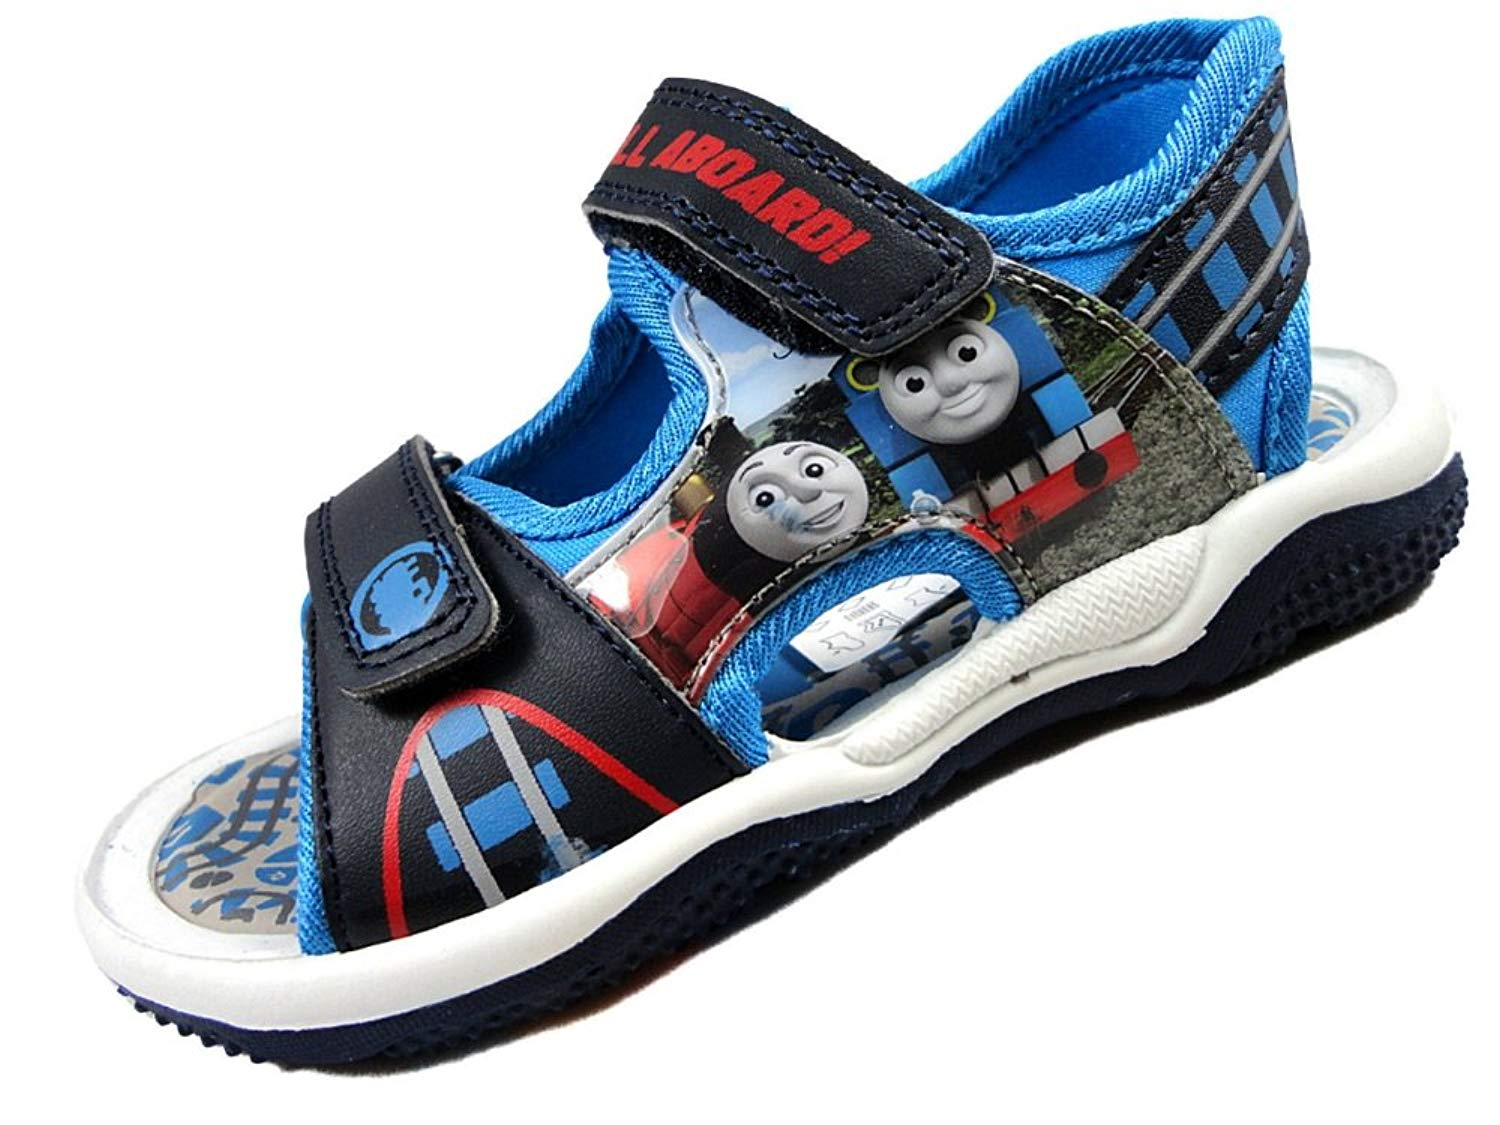 4d65a00eae2d2 Cheap Sandal Thomas, find Sandal Thomas deals on line at Alibaba.com